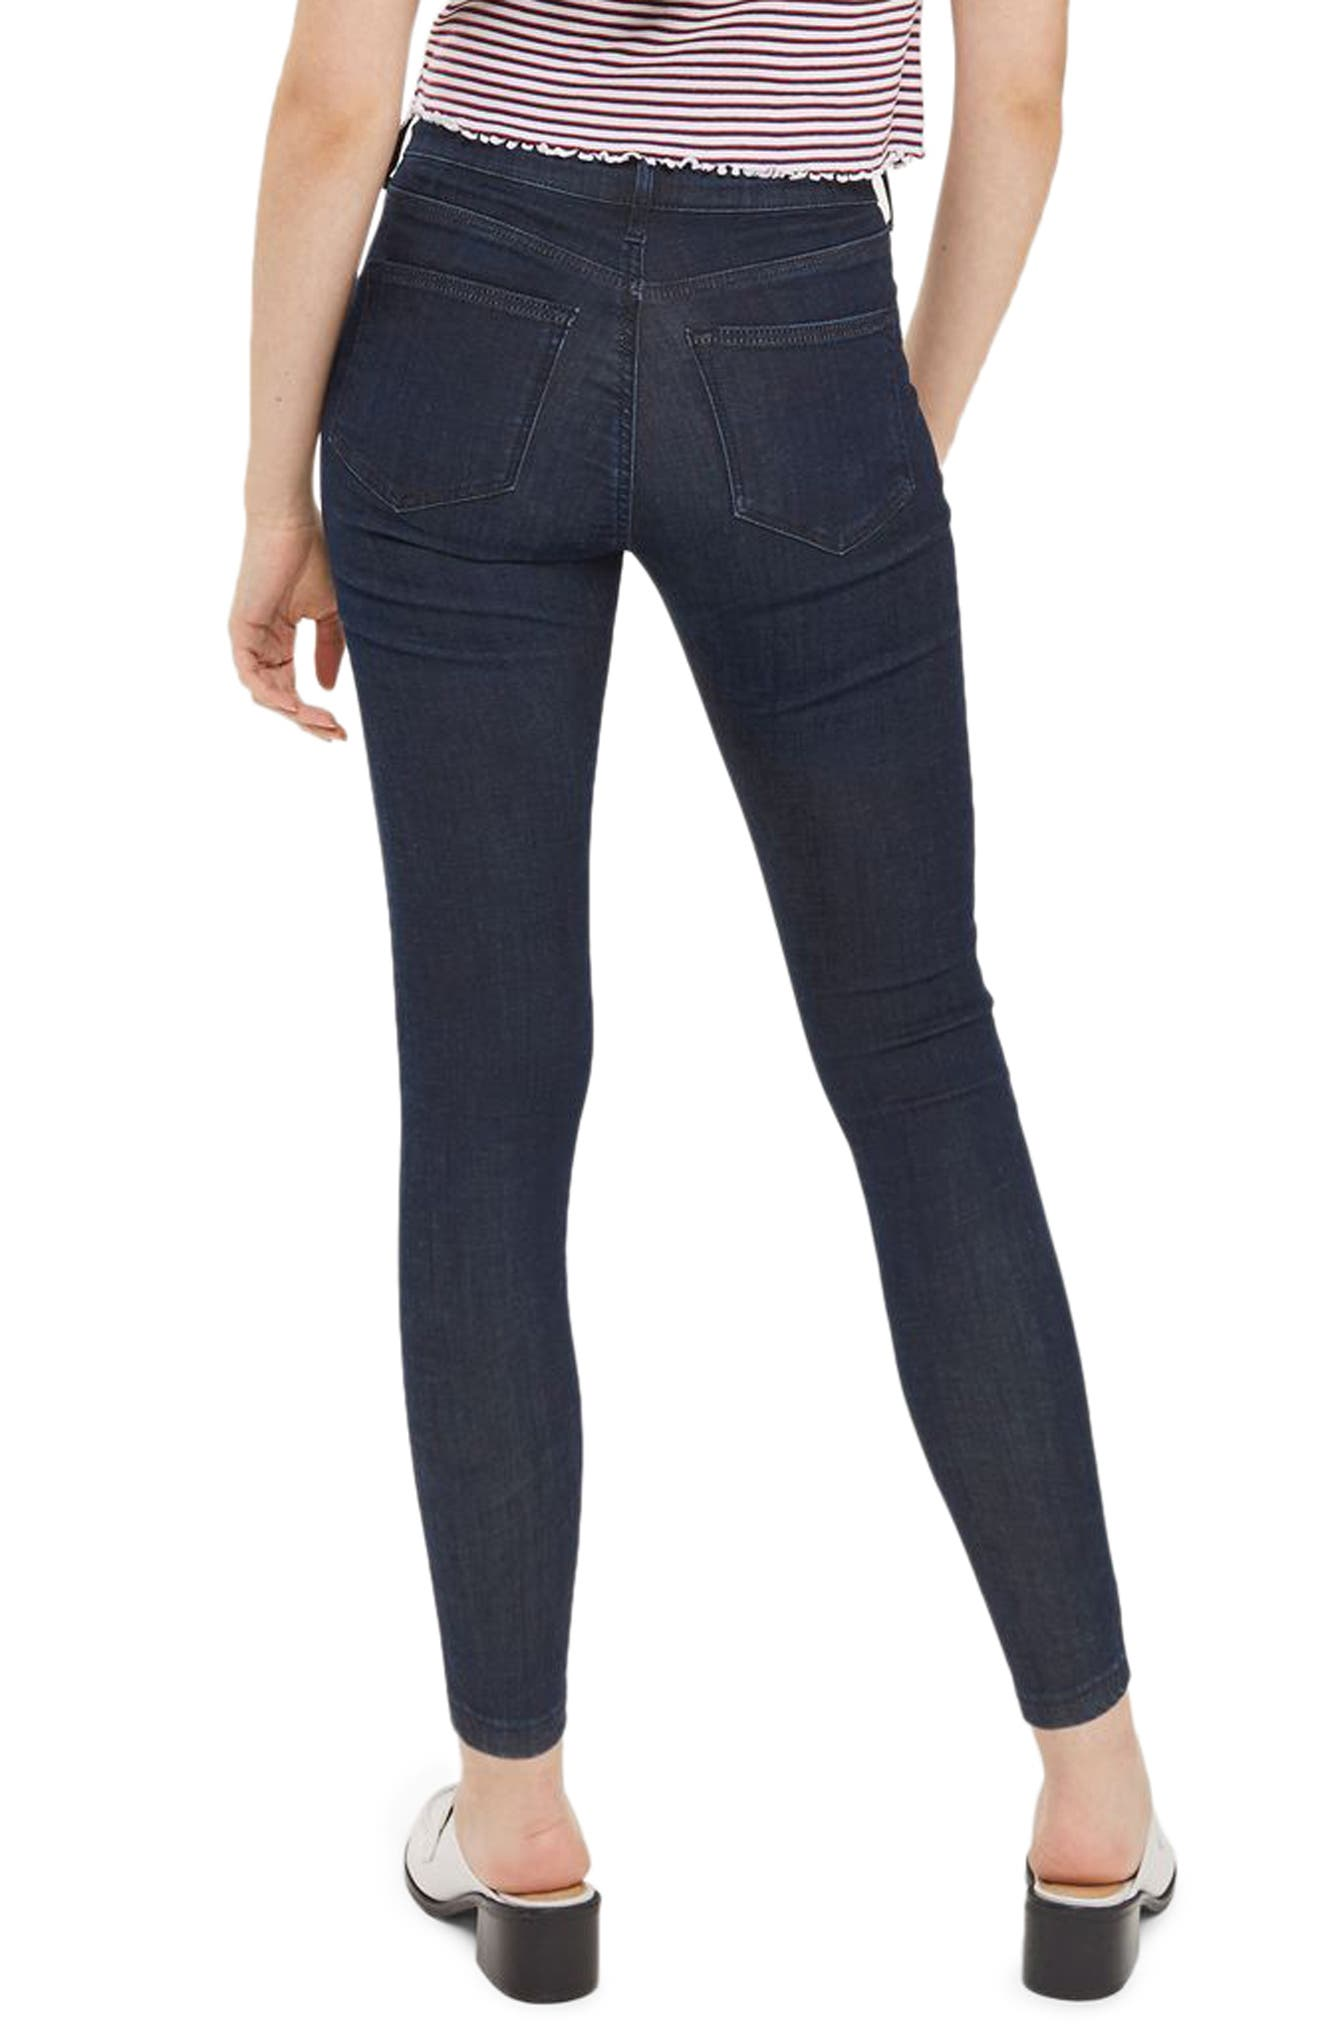 Leigh Skinny Ankle Jeans,                             Alternate thumbnail 2, color,                             401